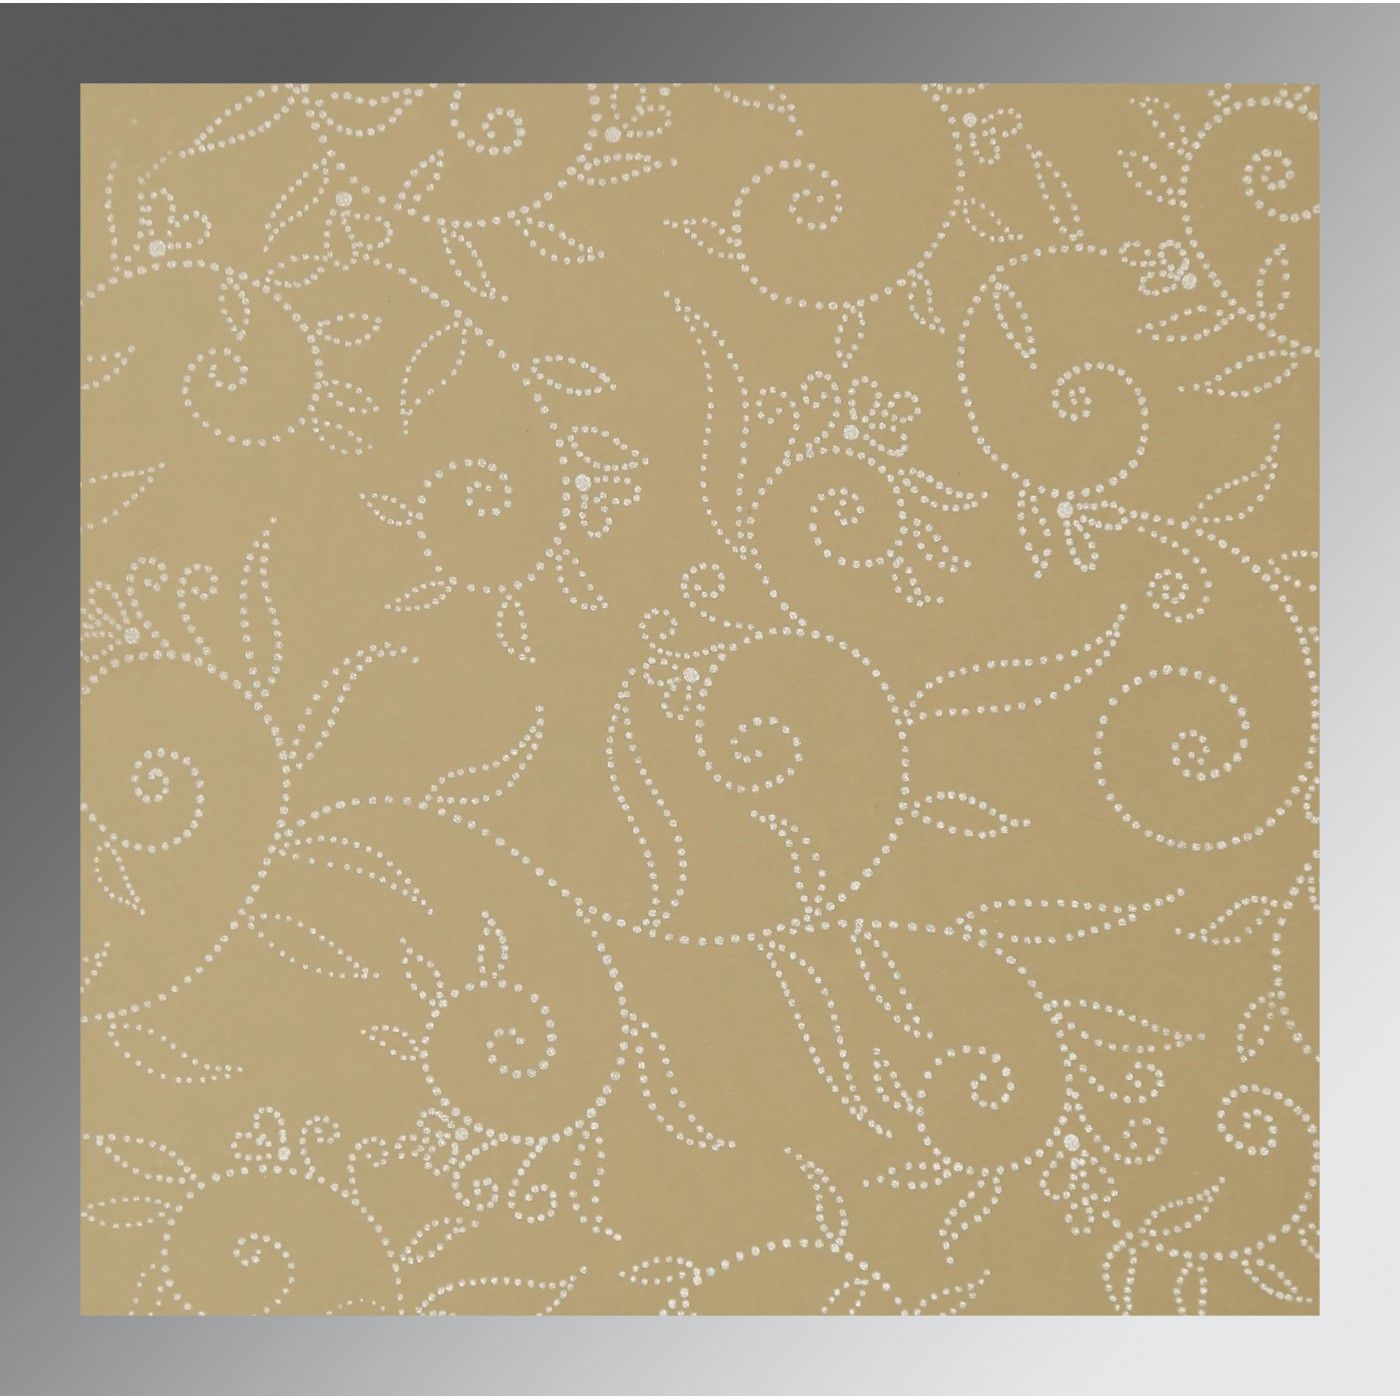 BEIGE BROWN SHIMMERY SCREEN PRINTED WEDDING INVITATION : CS-1447 - IndianWeddingCards